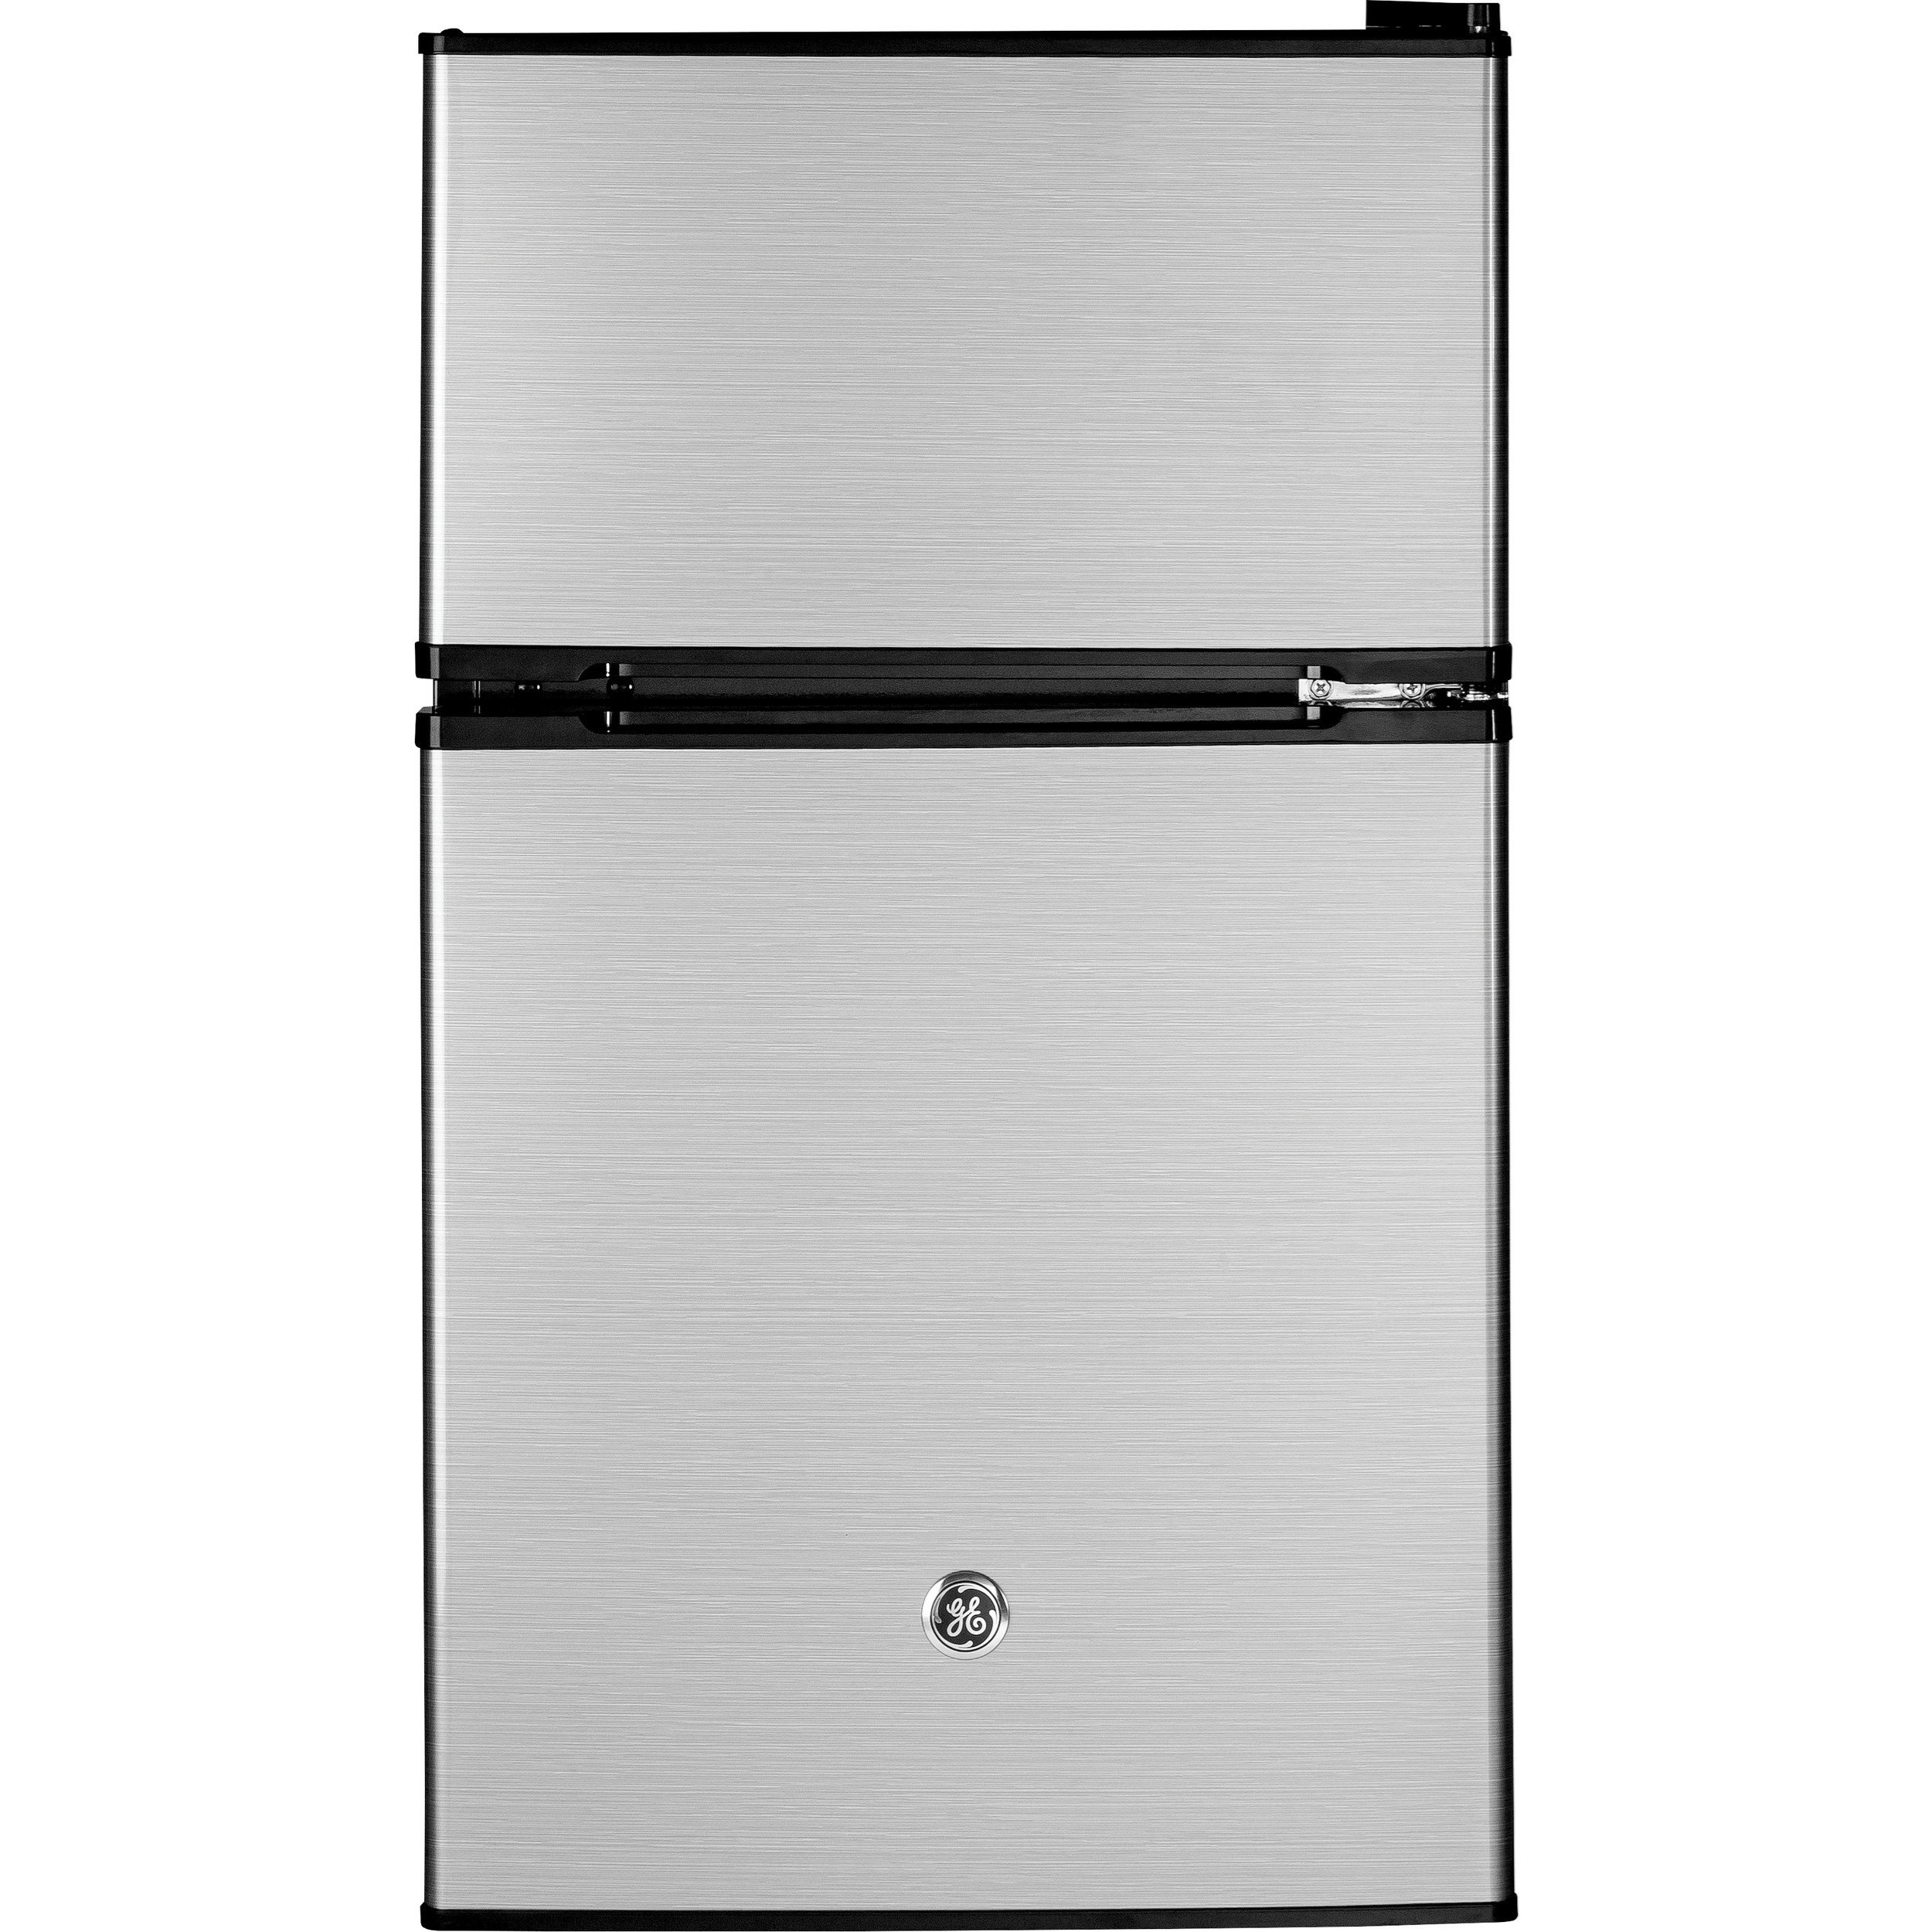 Compact Refrigerators - GE GE® Double-Door Compact Refrigerator by GE Appliances at Furniture and ApplianceMart